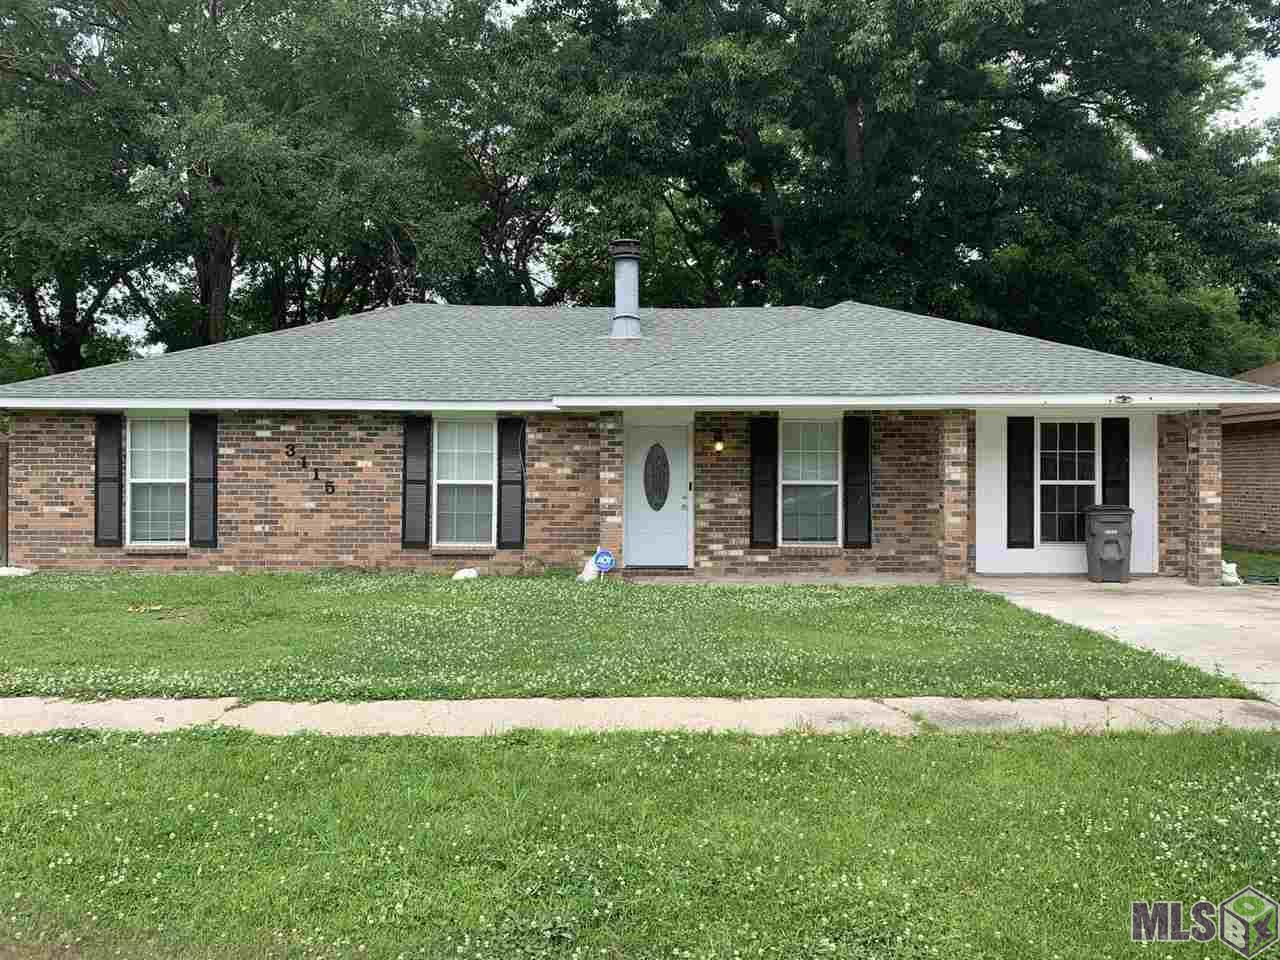 Beautiful 4bedroom and 2 bath home on a spacious lot. Roof, A/C and compressor ,and water heater is less than 5 years old,  Big yard with new fence. Home warranty is currently on home.  Easily access from I-12, central throughway and Florida blvd. Move in ready and easy to show.